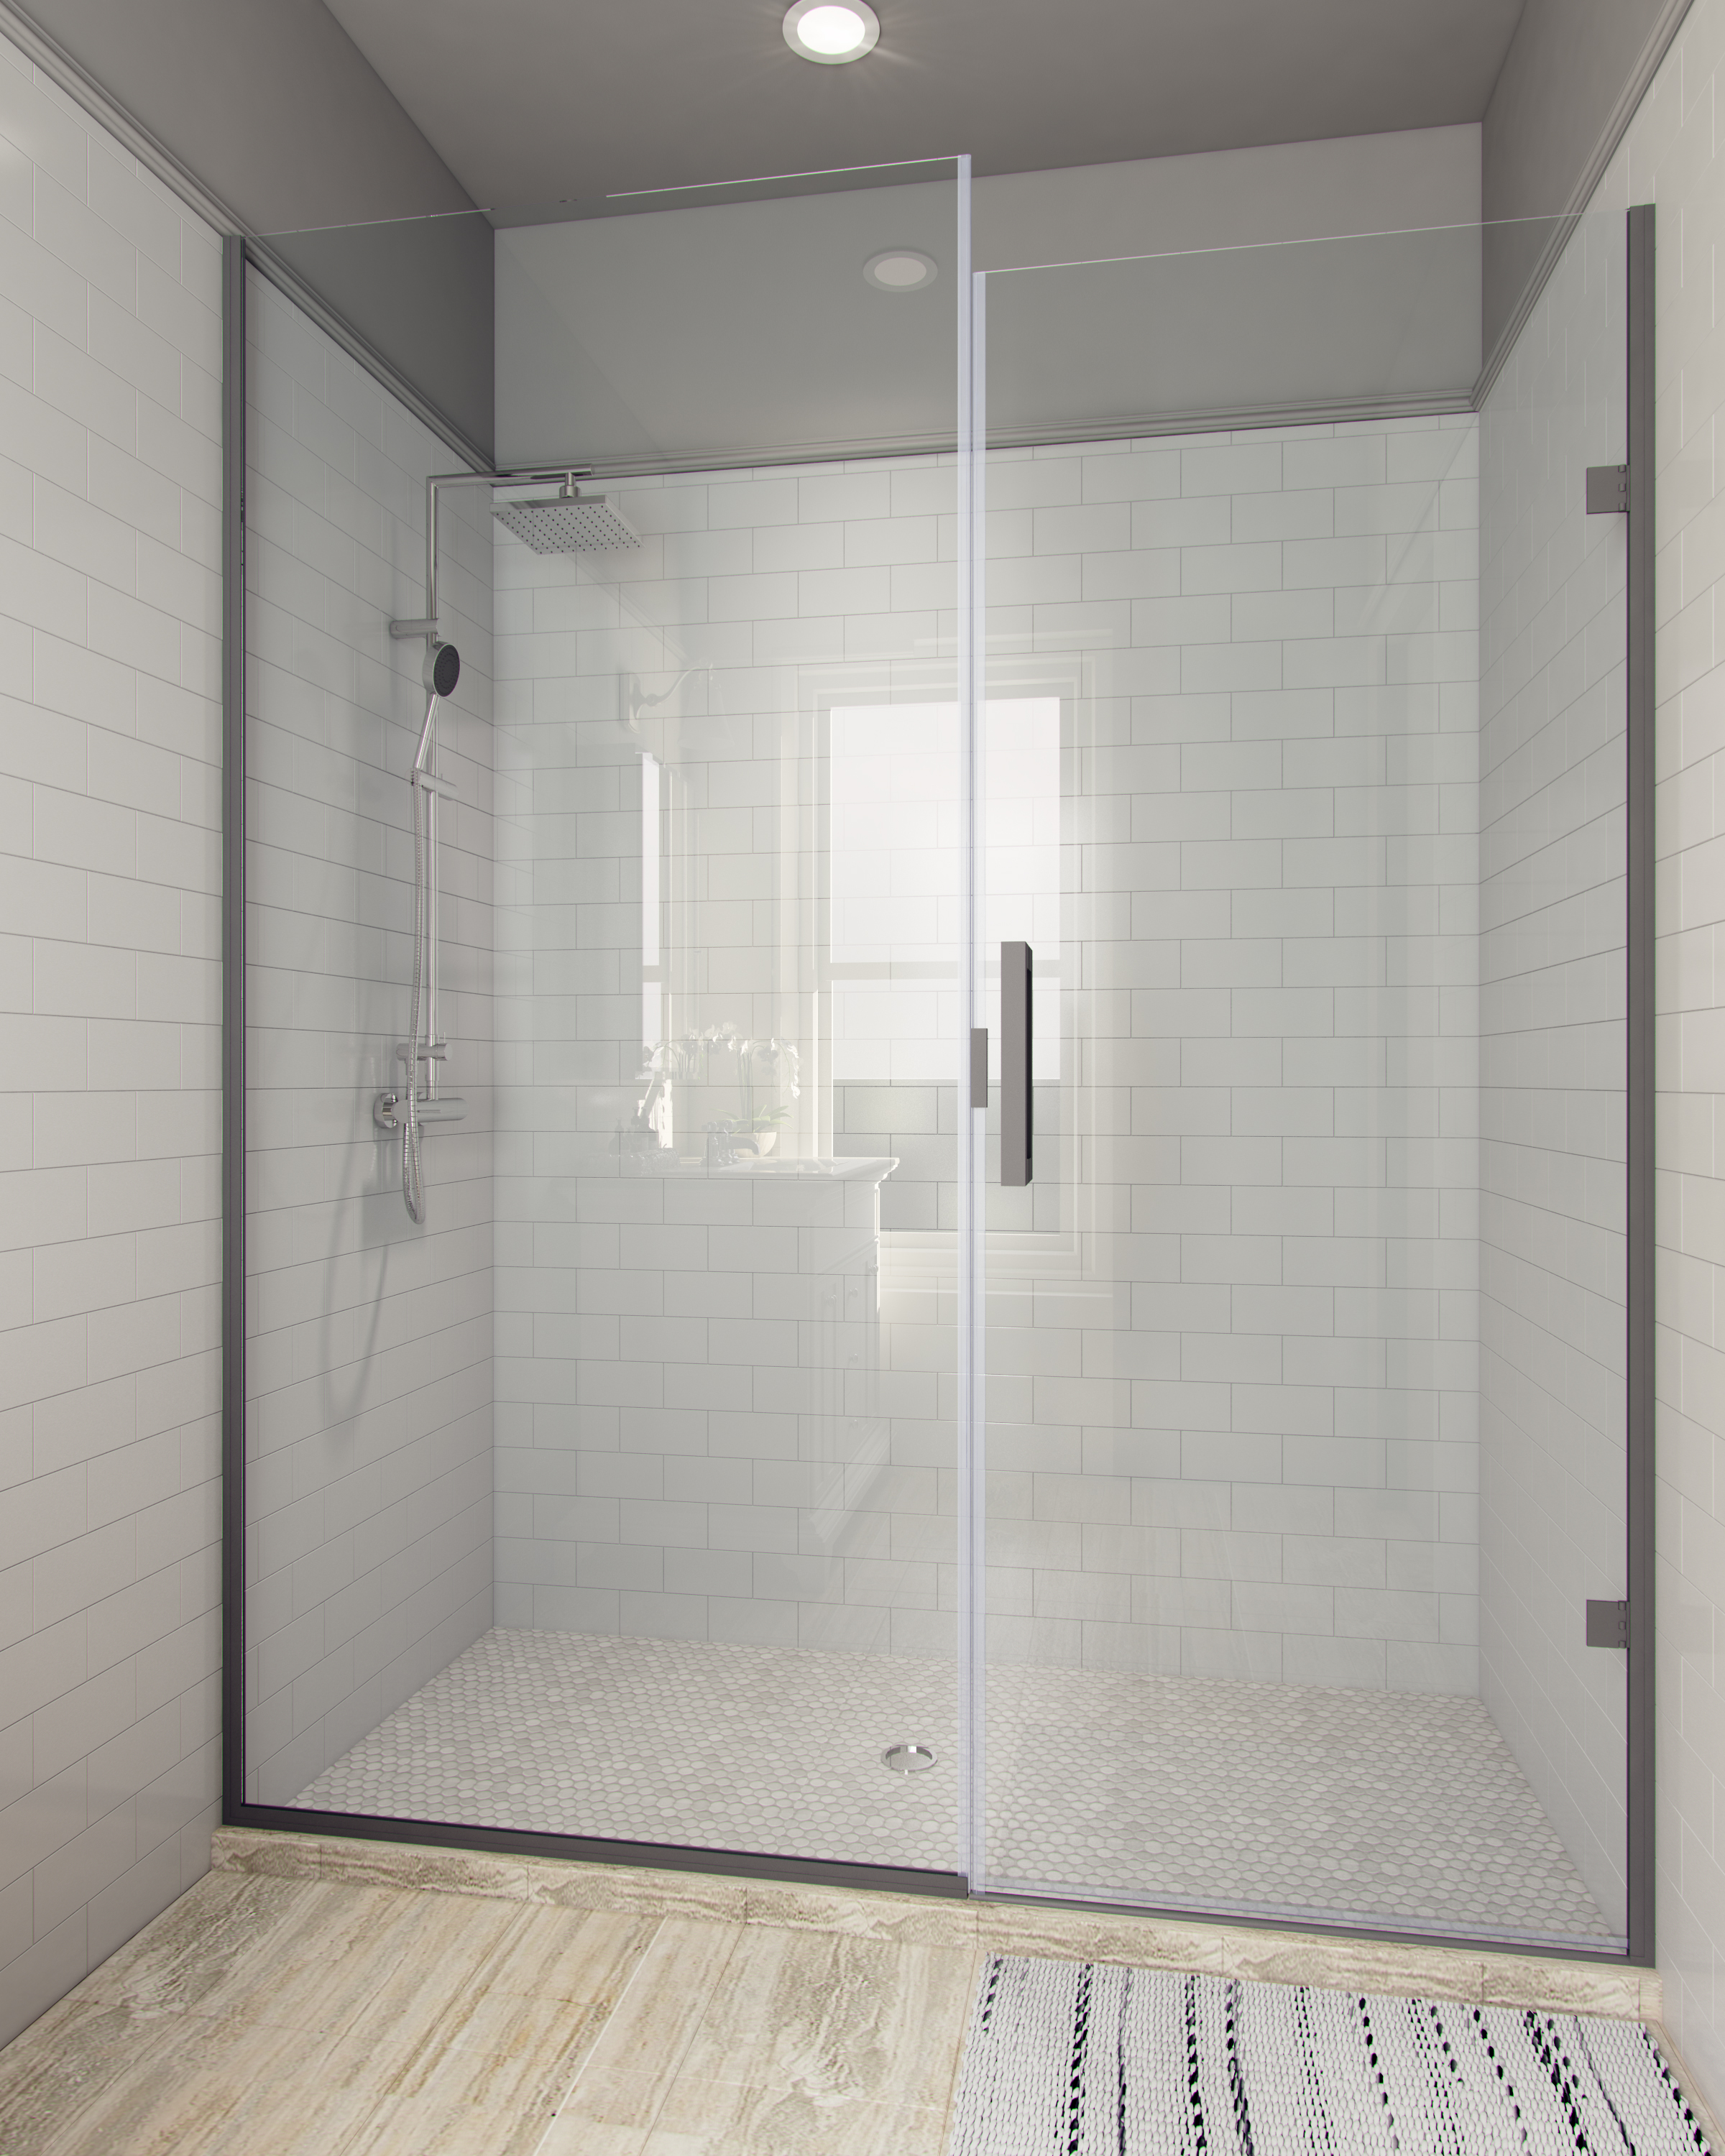 Sonoran Semi Frameless Glass Shower Enclosure 0.25 door - 0.375 panel